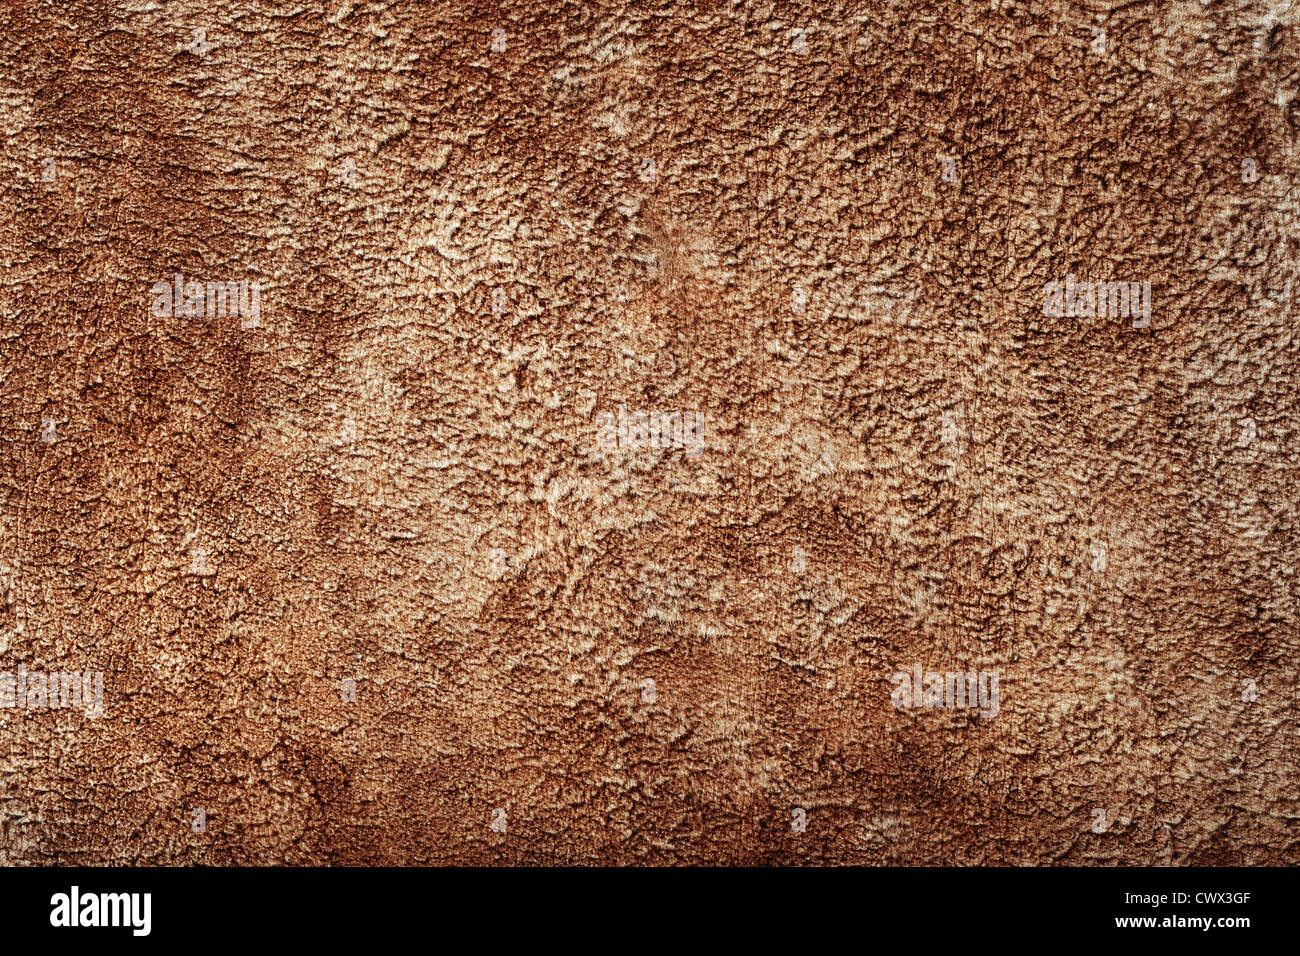 Brown Animal Skin Texture As Wallpaper Or Background Stock Photo Alamy